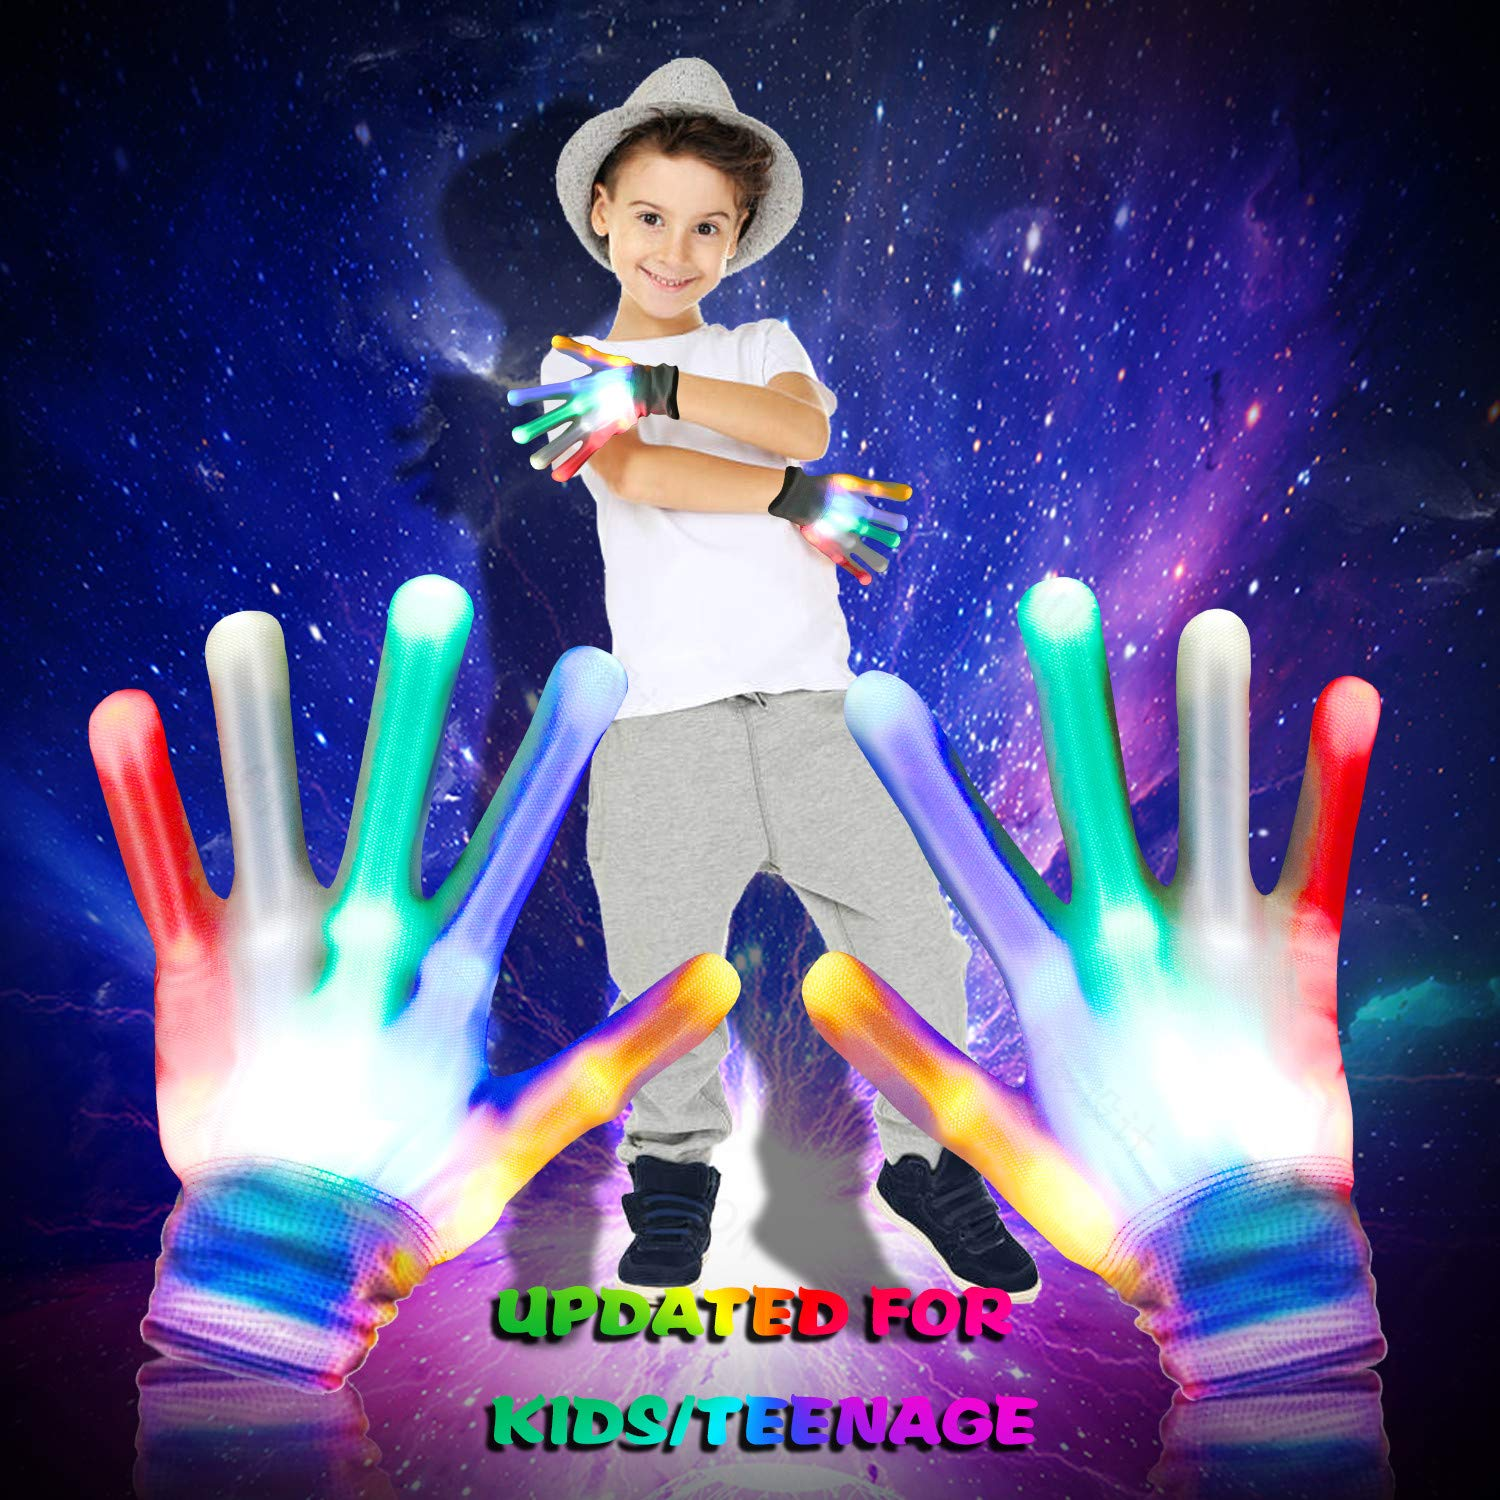 Led Skeleton Gloves for Kids, Light Up LED Flashing Skeleton Hand Gloves 12 Color Changing Flashing Shows Halloween Decoration Costume Party Concert Clubbing, Best Gift for Kids Boys &Girls, for Novelty, 1 Pair, White by Giom